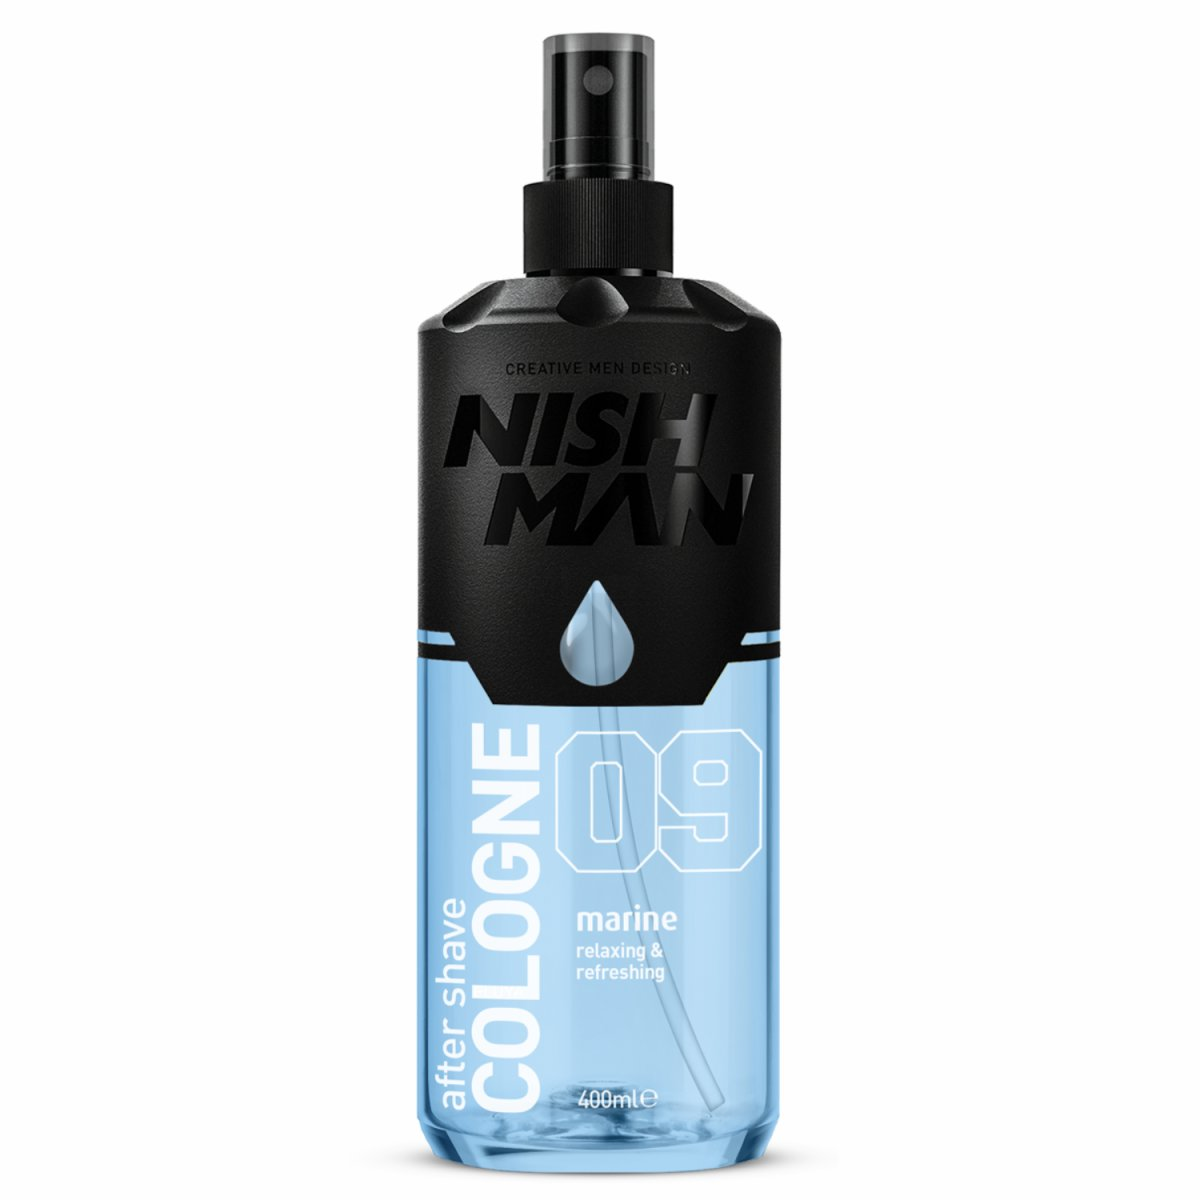 NISHMAN 09 After Shave Cologne - Marine 400 ml XL